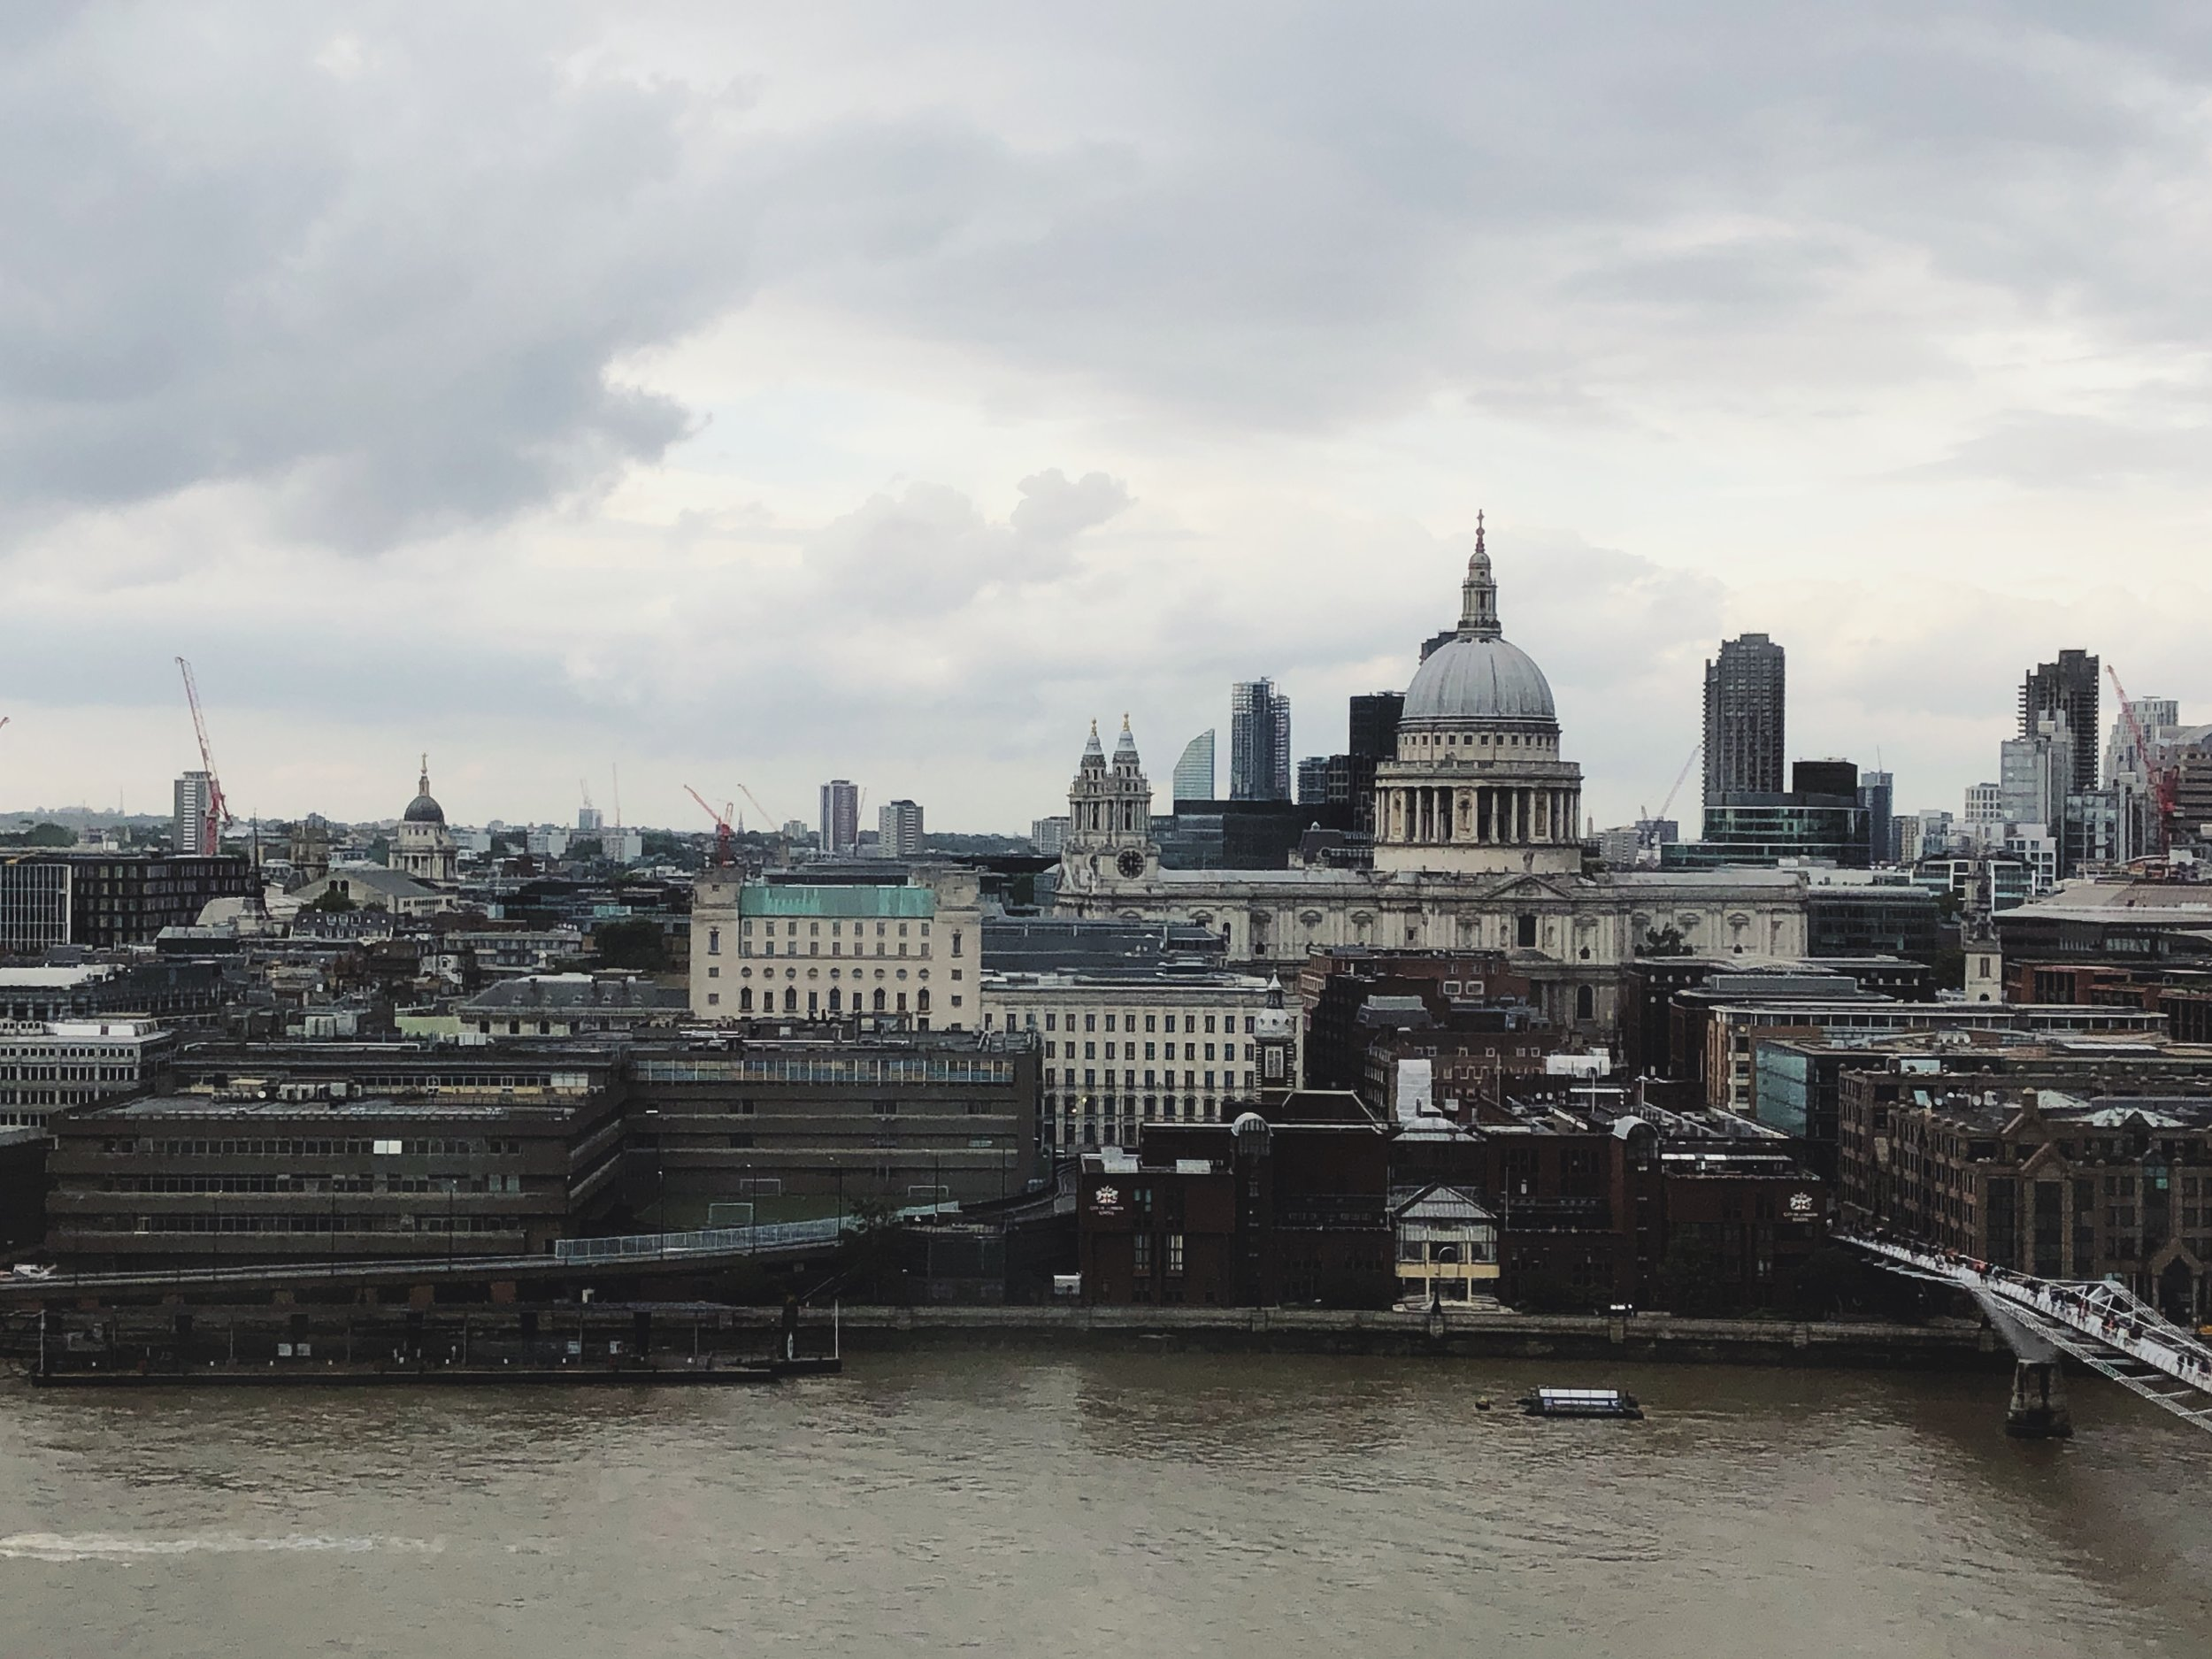 A view of     St. Paul's Cathedra    l (over 1400 years old!) from the 9th floor of     the Tate Modern museum    .